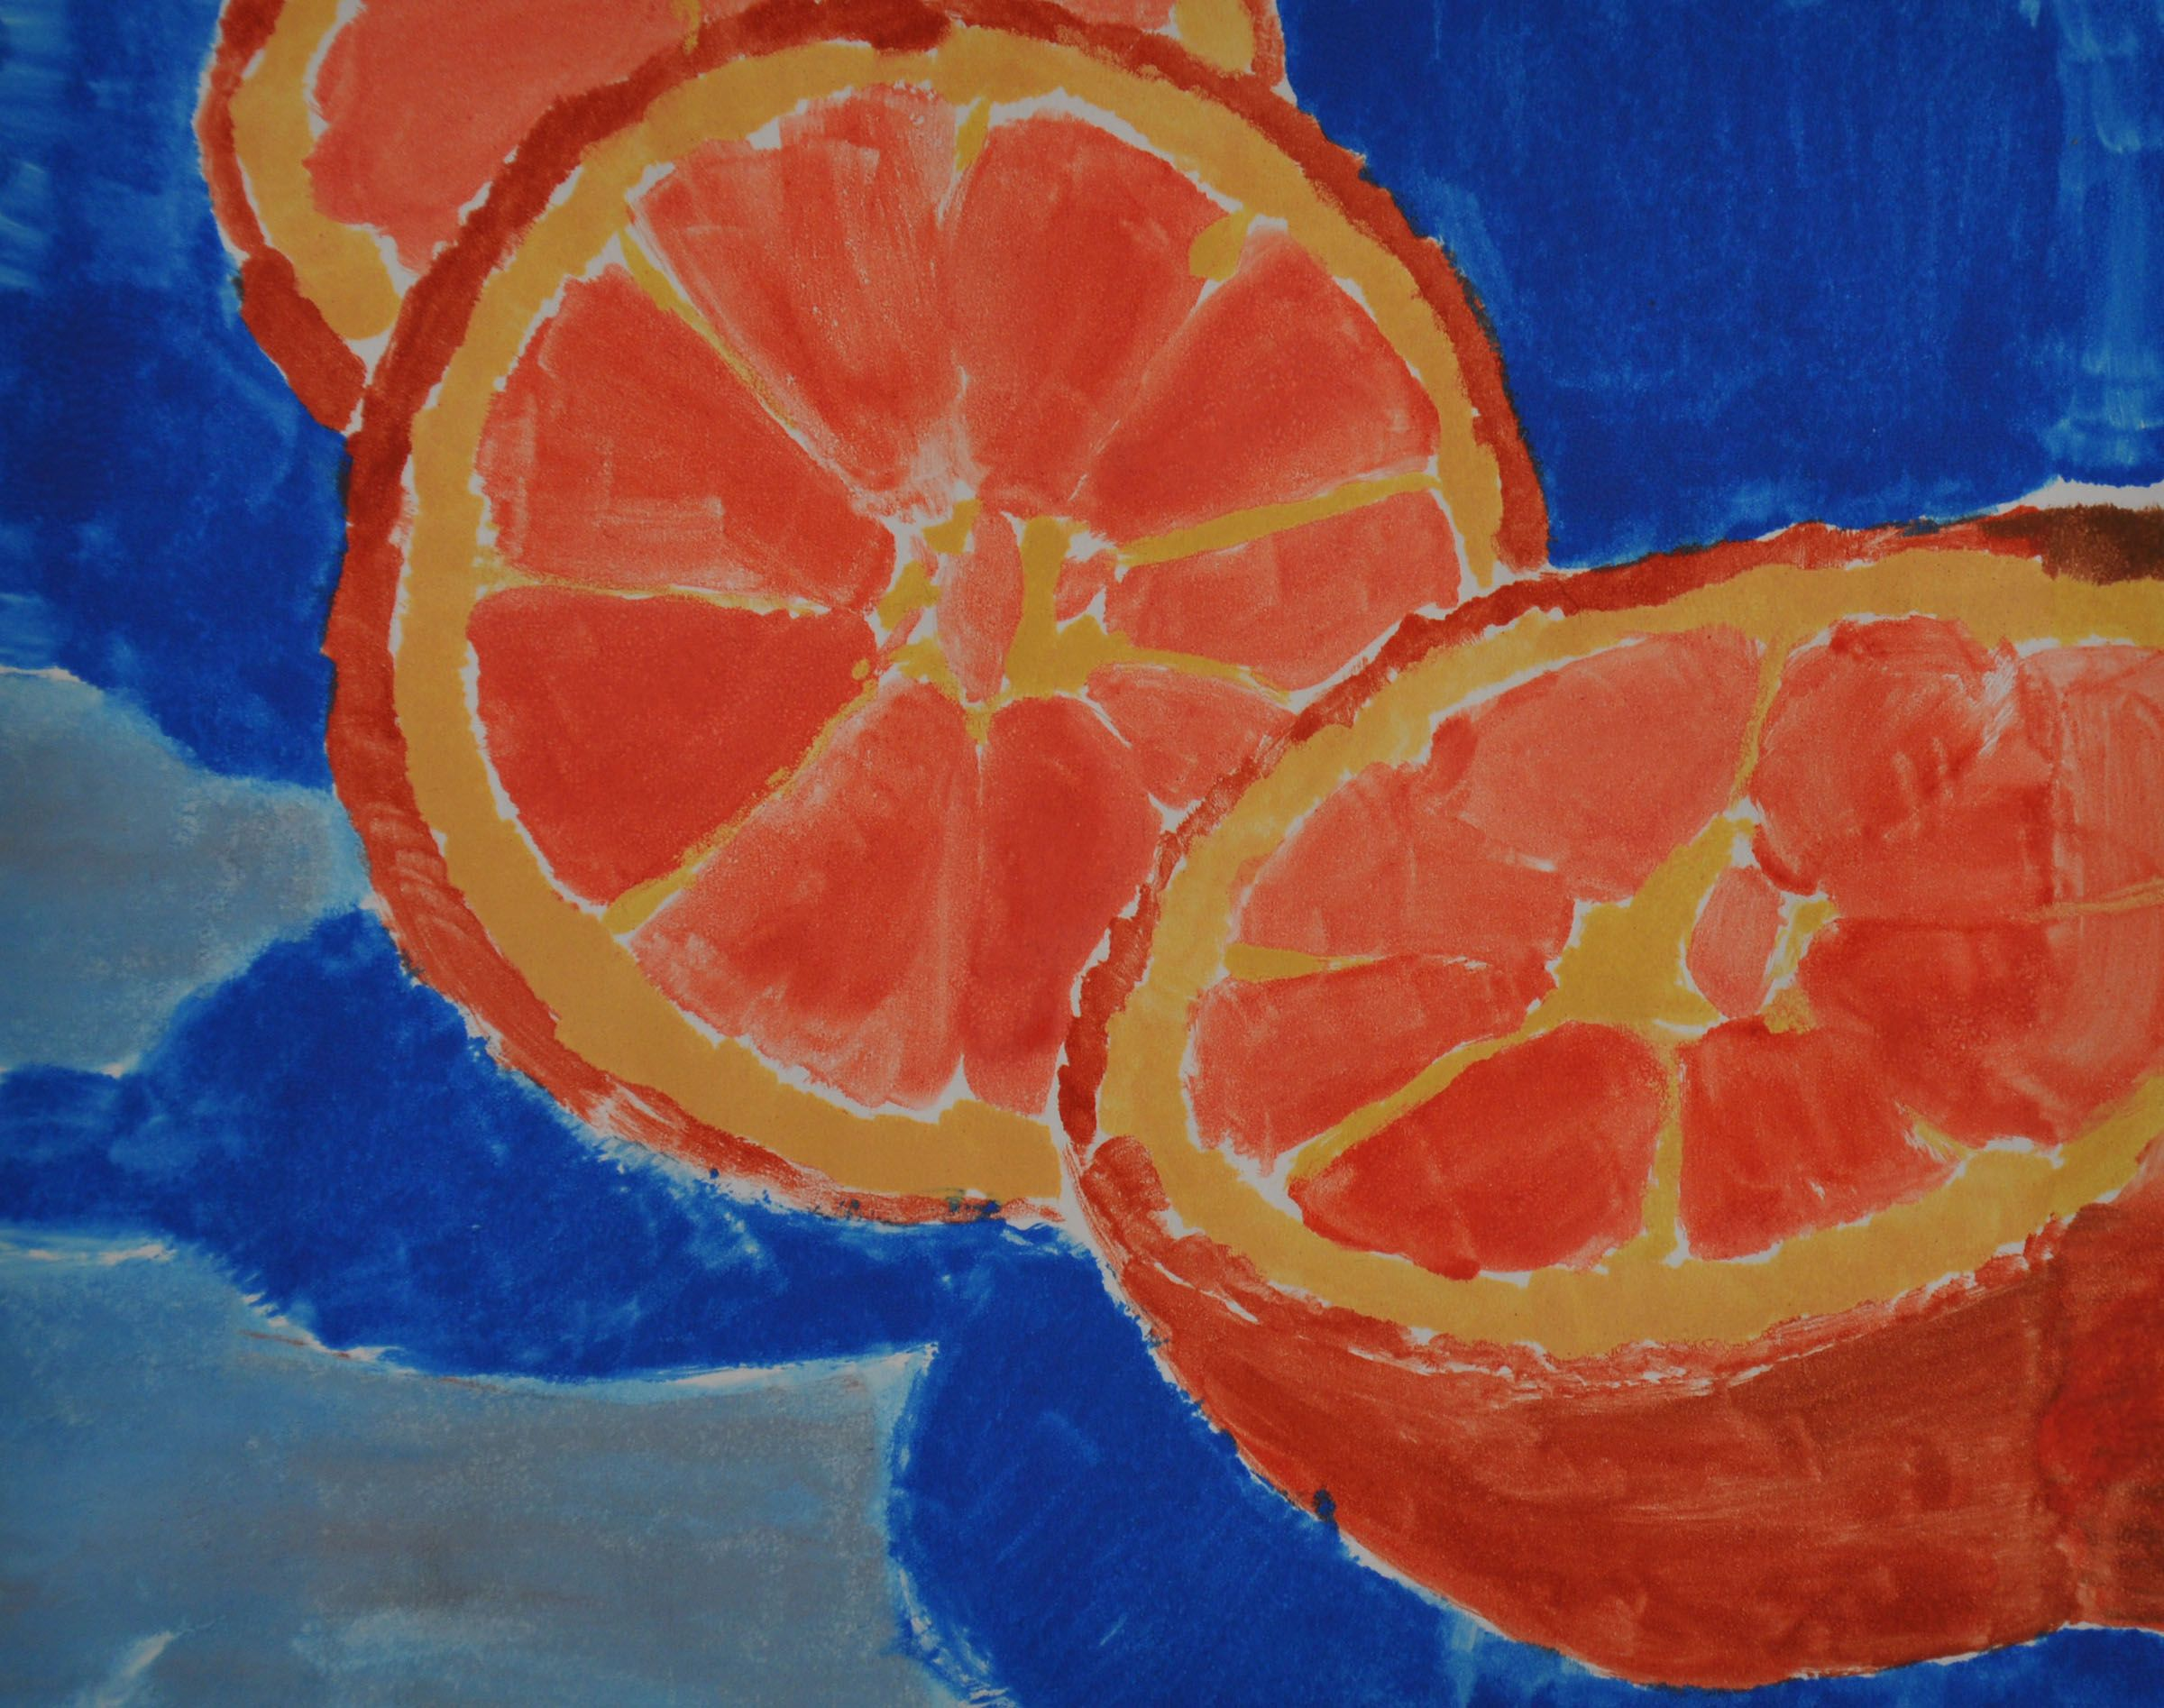 2400x1894 Monochromatic Fruits Complementary Color And Value Painting